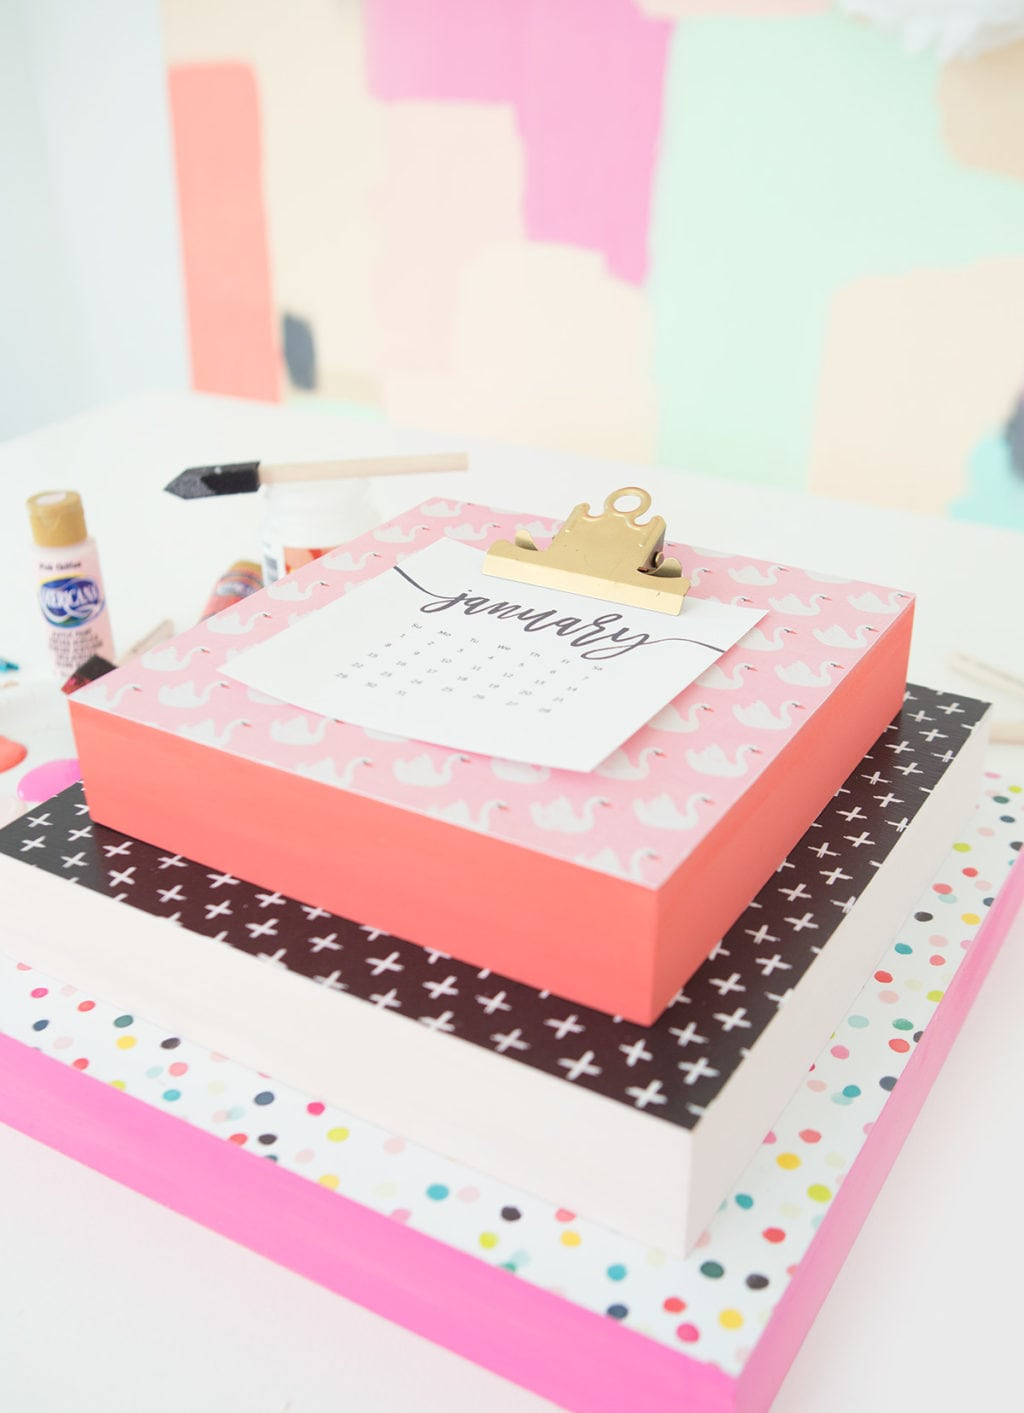 DIY Calendar Clipboard with Free Printable Calendar | damask love